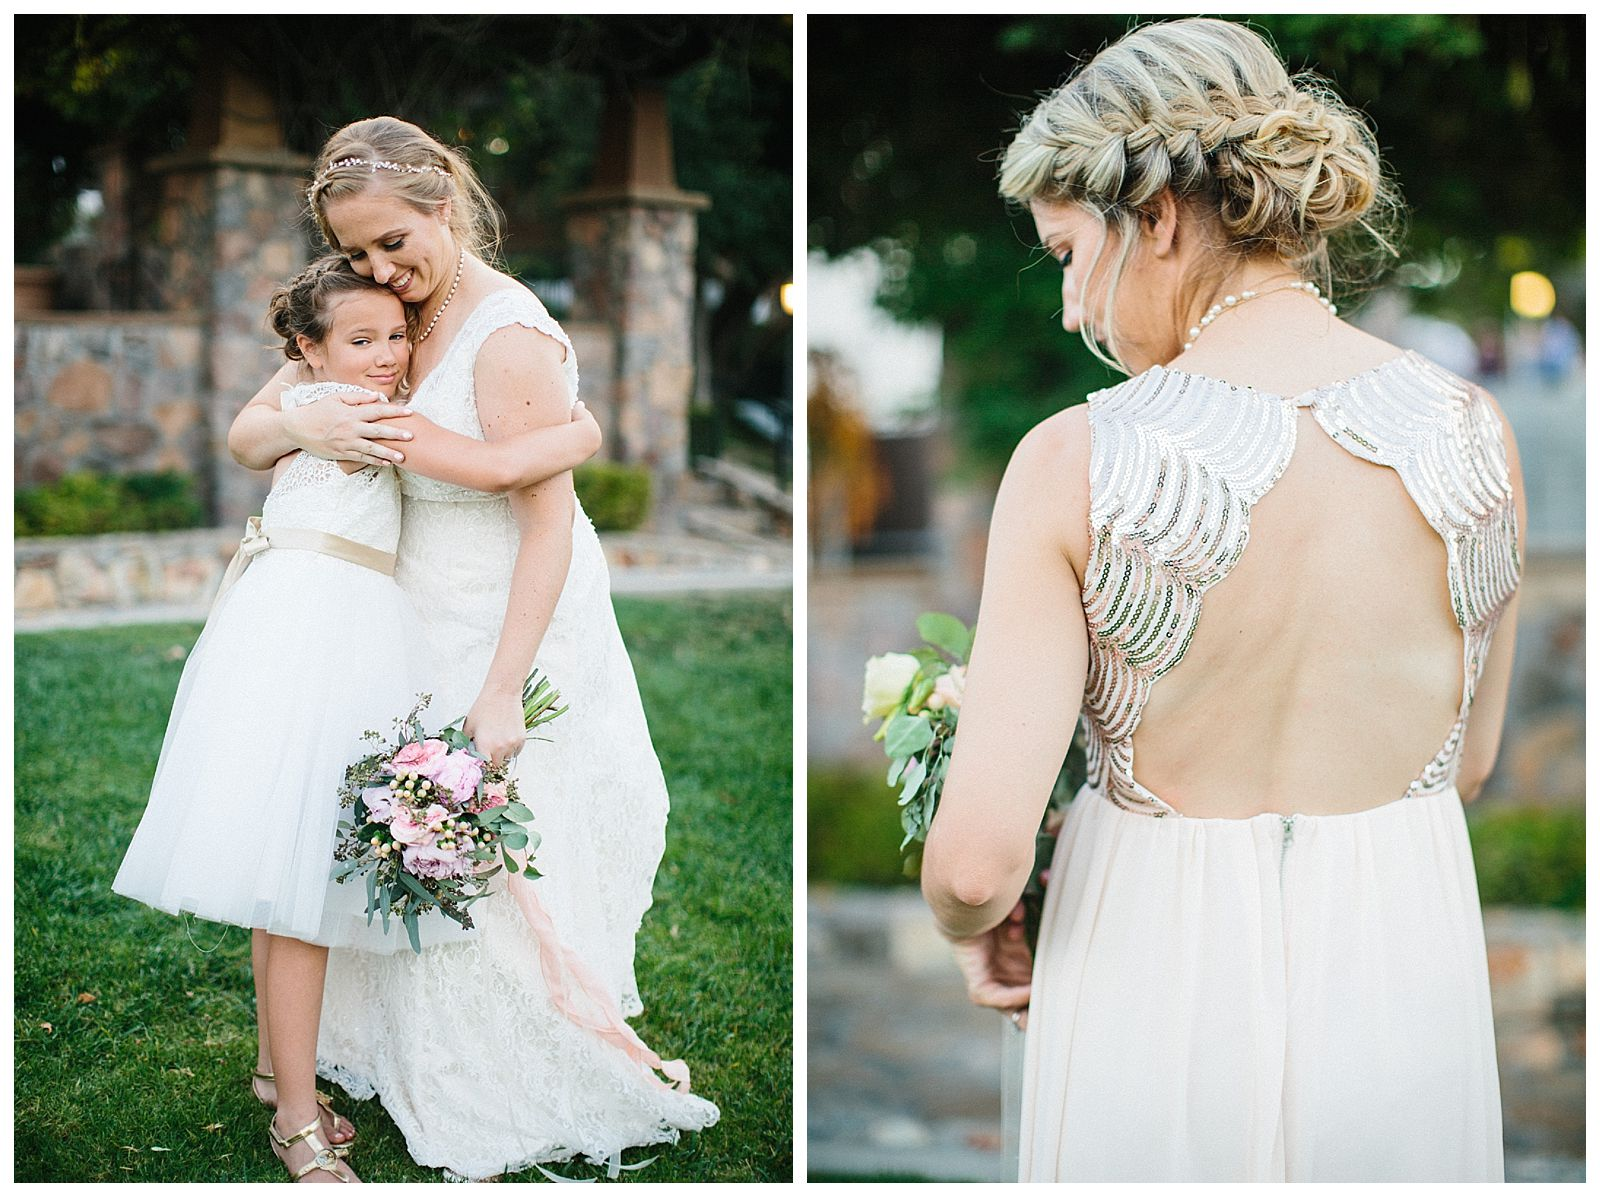 Sammie B , Bride and flower girl, backless bridesmaid dress